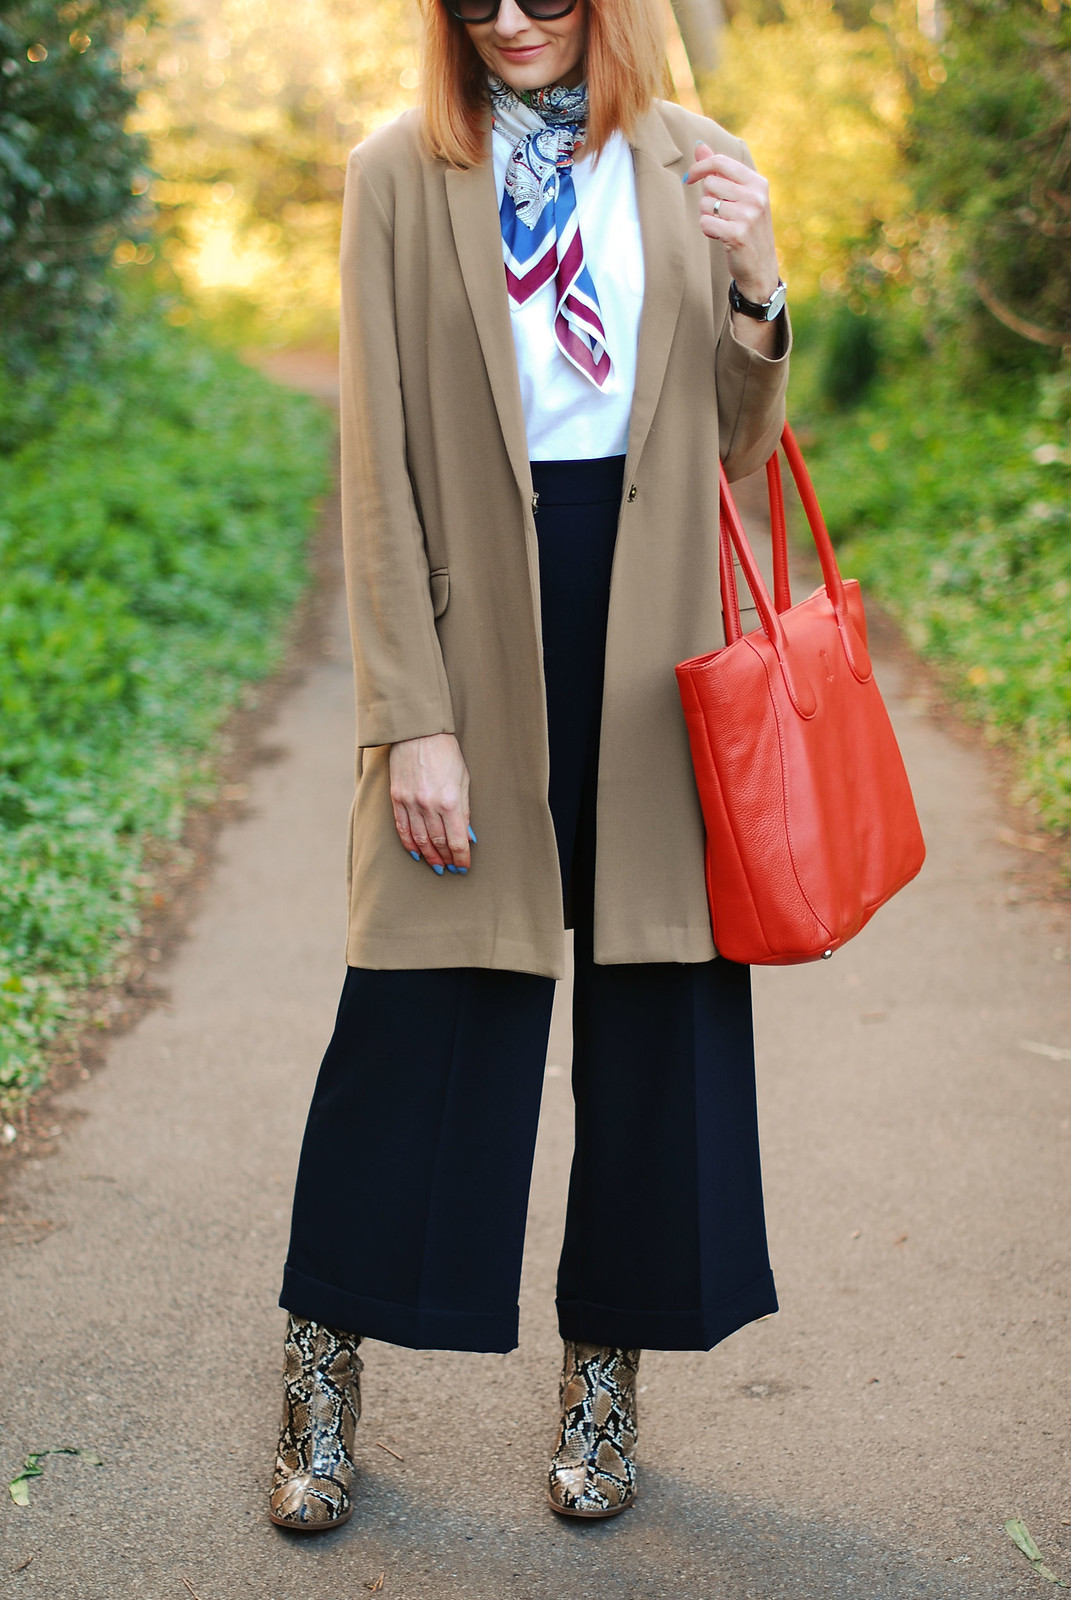 SS16 Smart style: Longline blazer with M&S Archive by Alexa culottes, neck scarf, snakeskin boots, orange tote   Not Dressed As Lamb